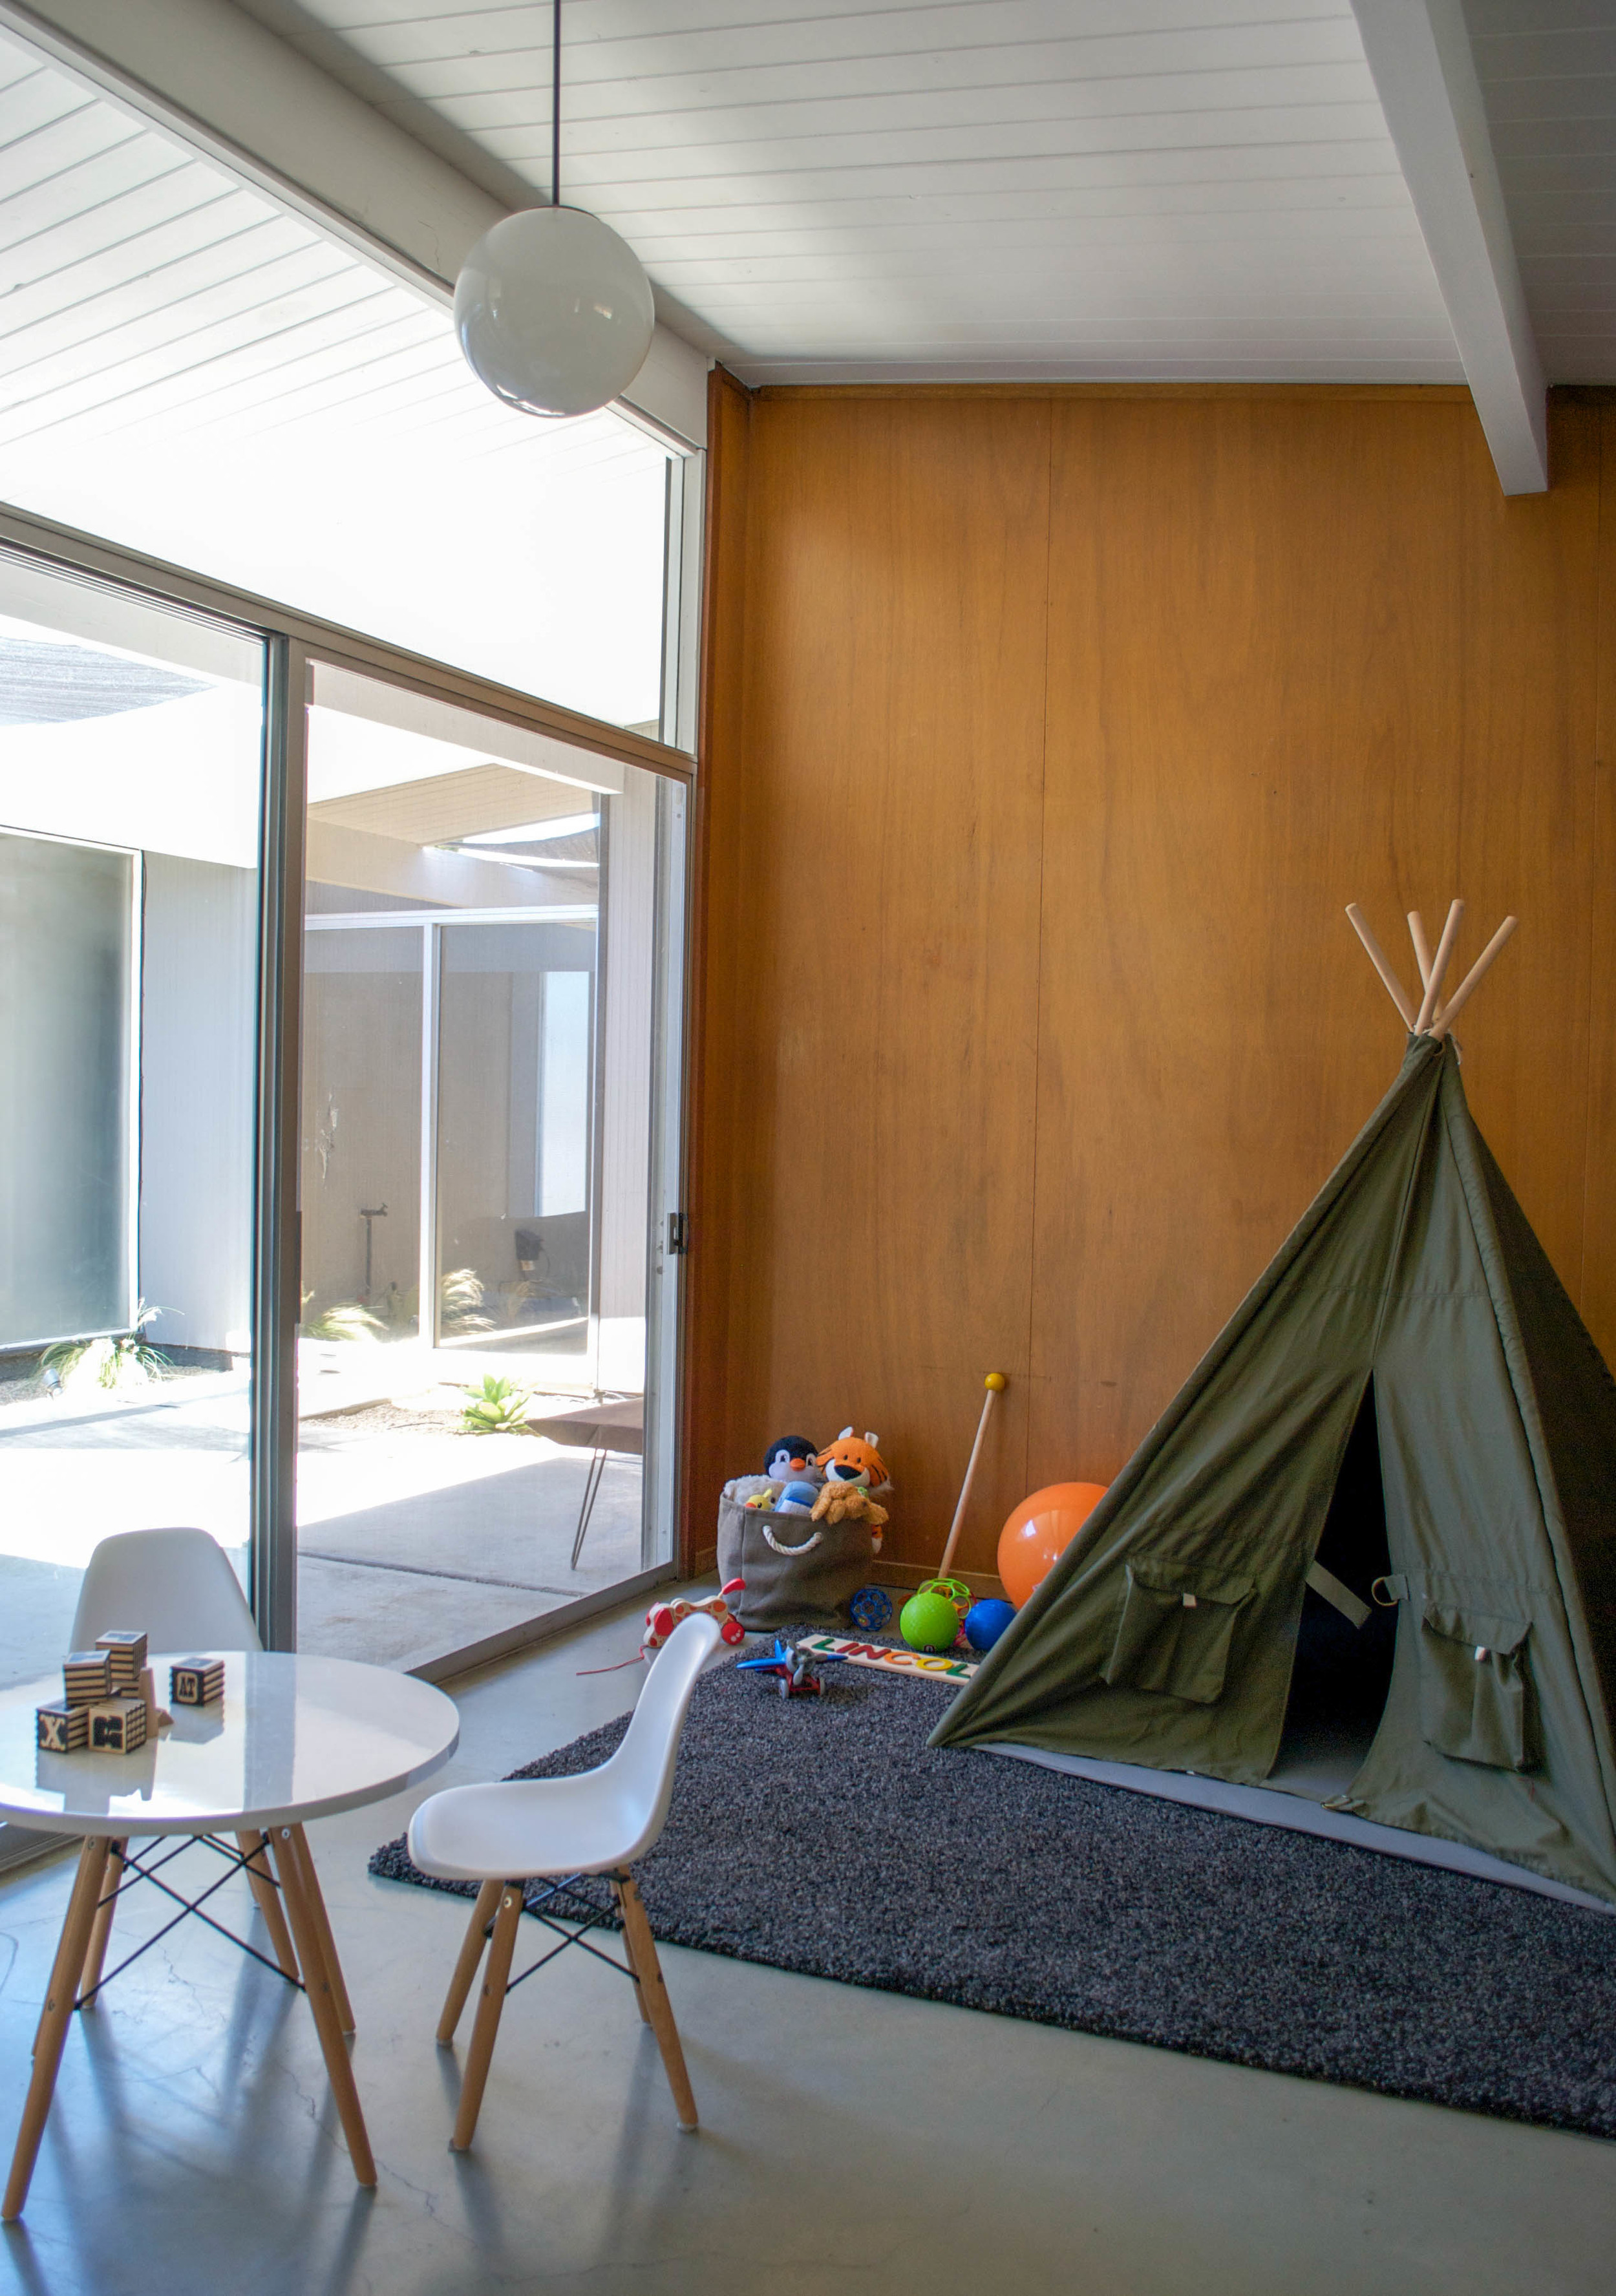 Lincoln's playroom is furnished with a modern table and chair set,as well as a spot to camp out and get cozy.